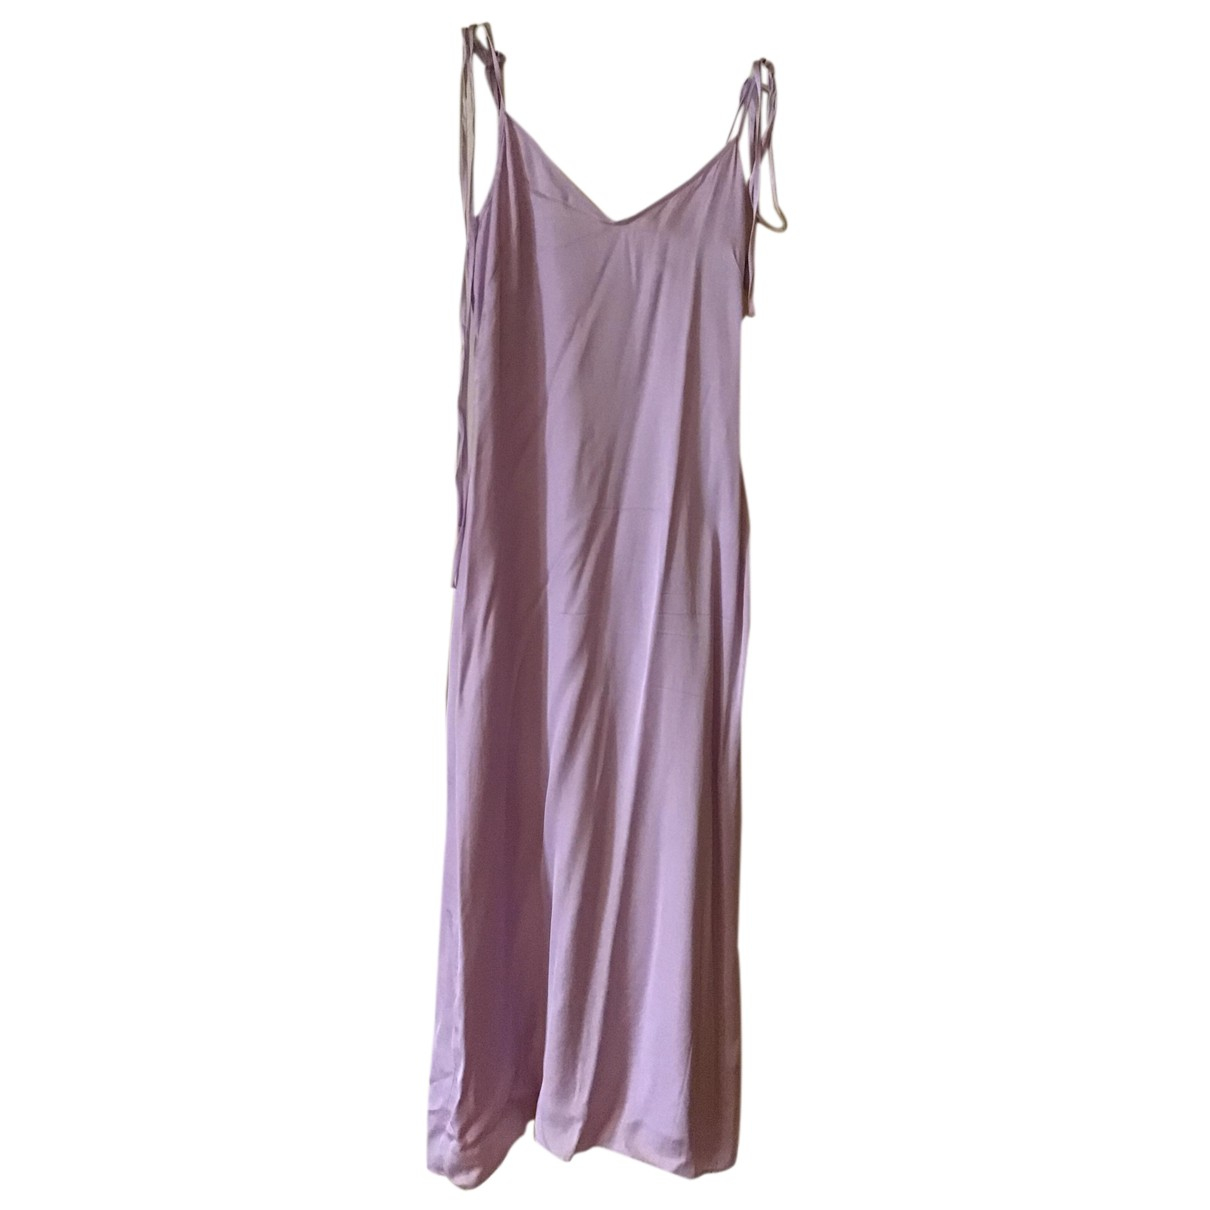 & Other Stories - Robe   pour femme - violet